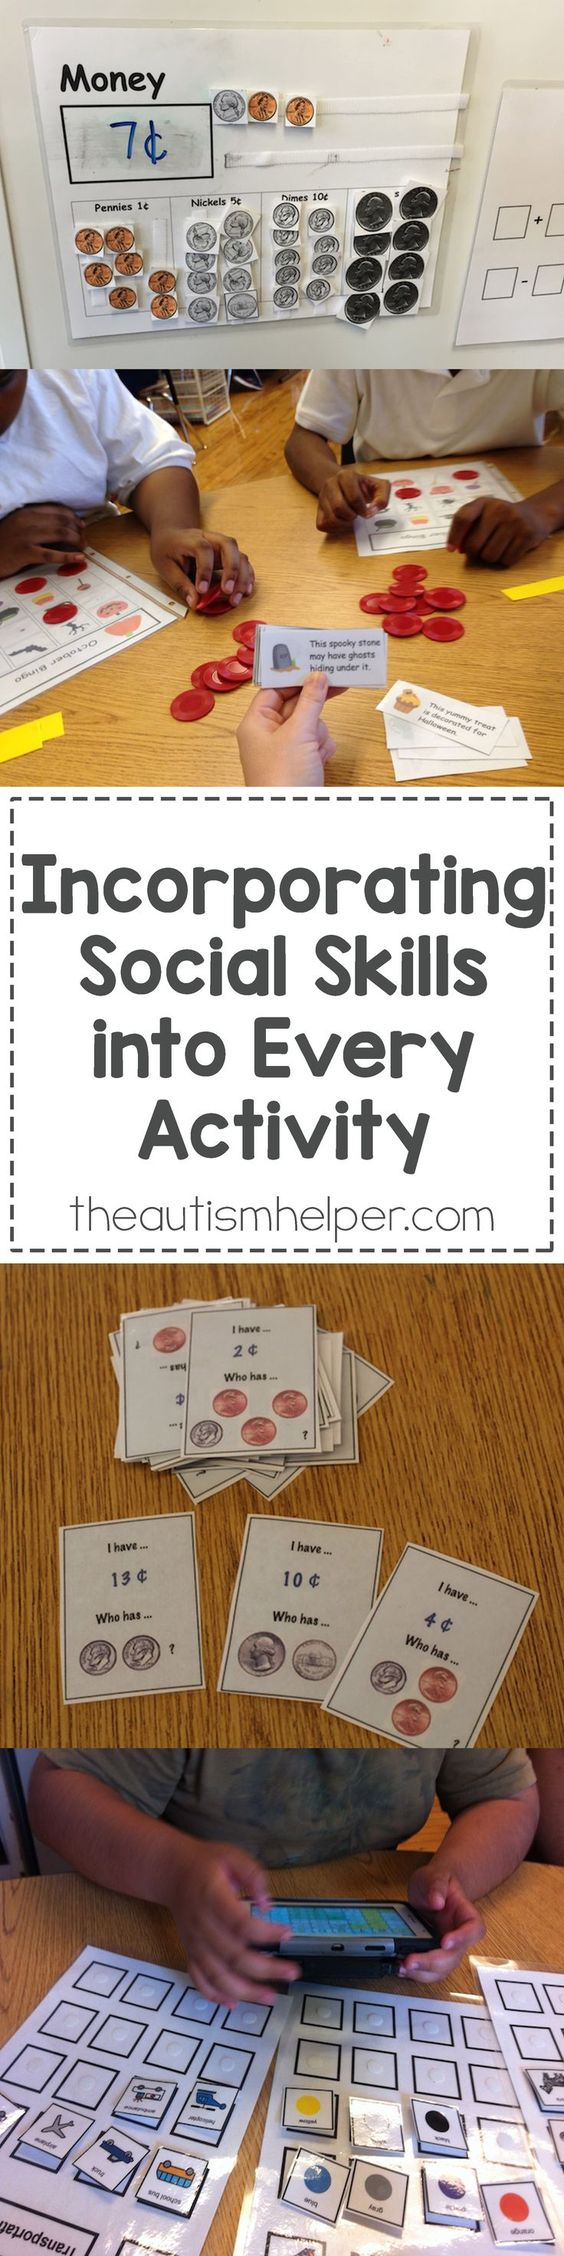 Incorporating Social Skills Into Every Activity | Habilidades sociales